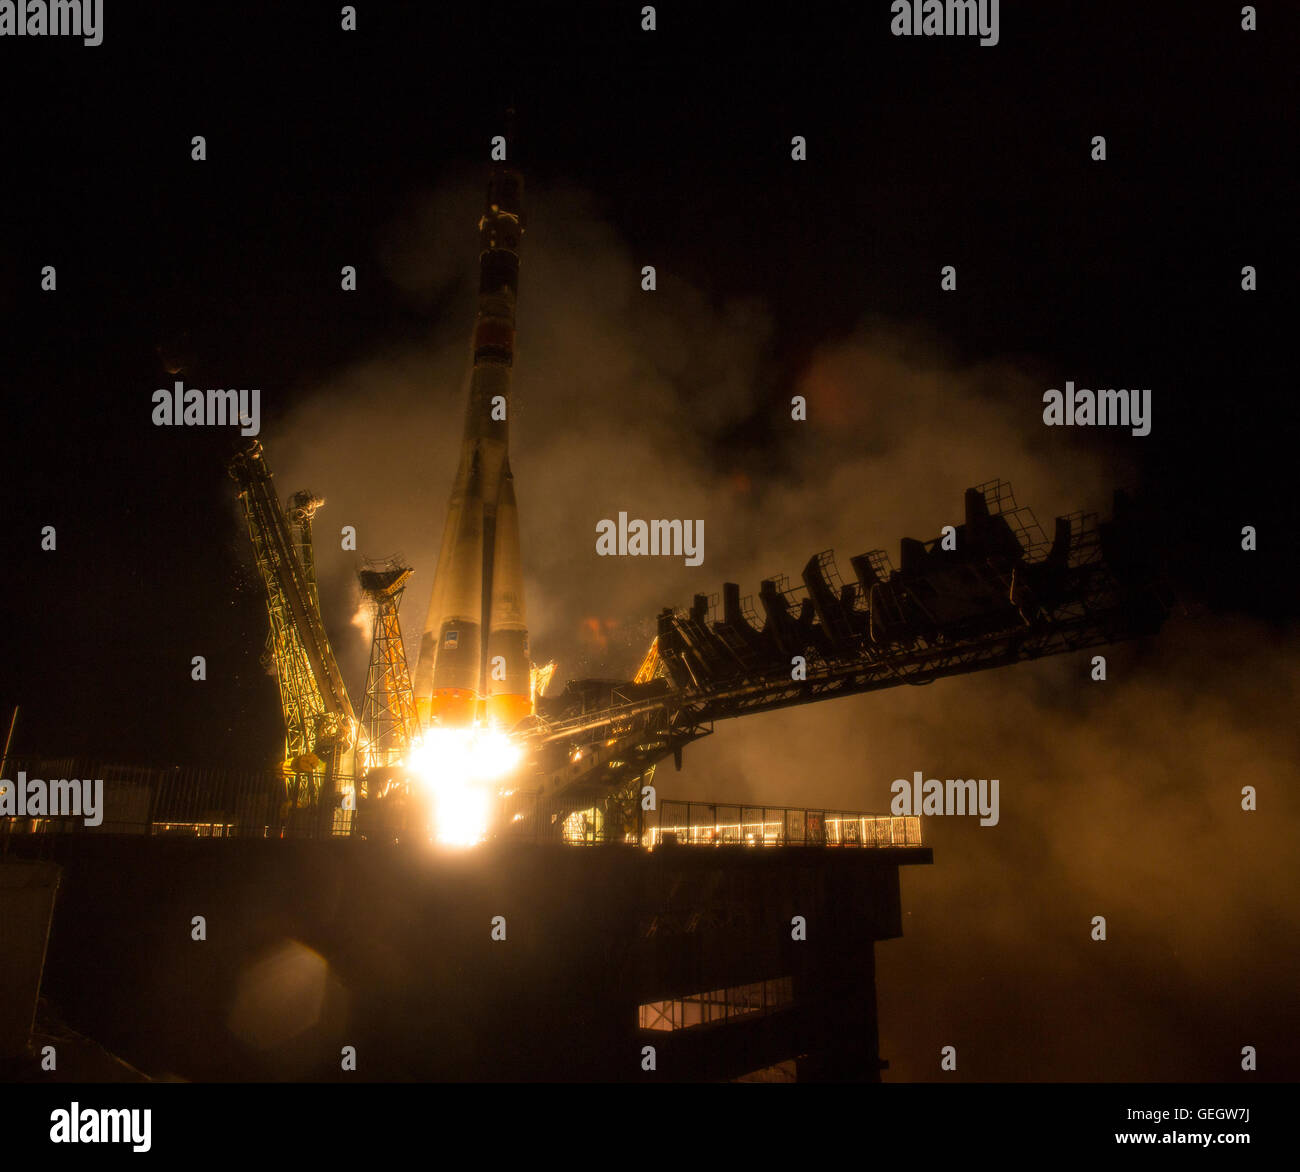 Expedition 47 Launch  03190007 - Stock Image